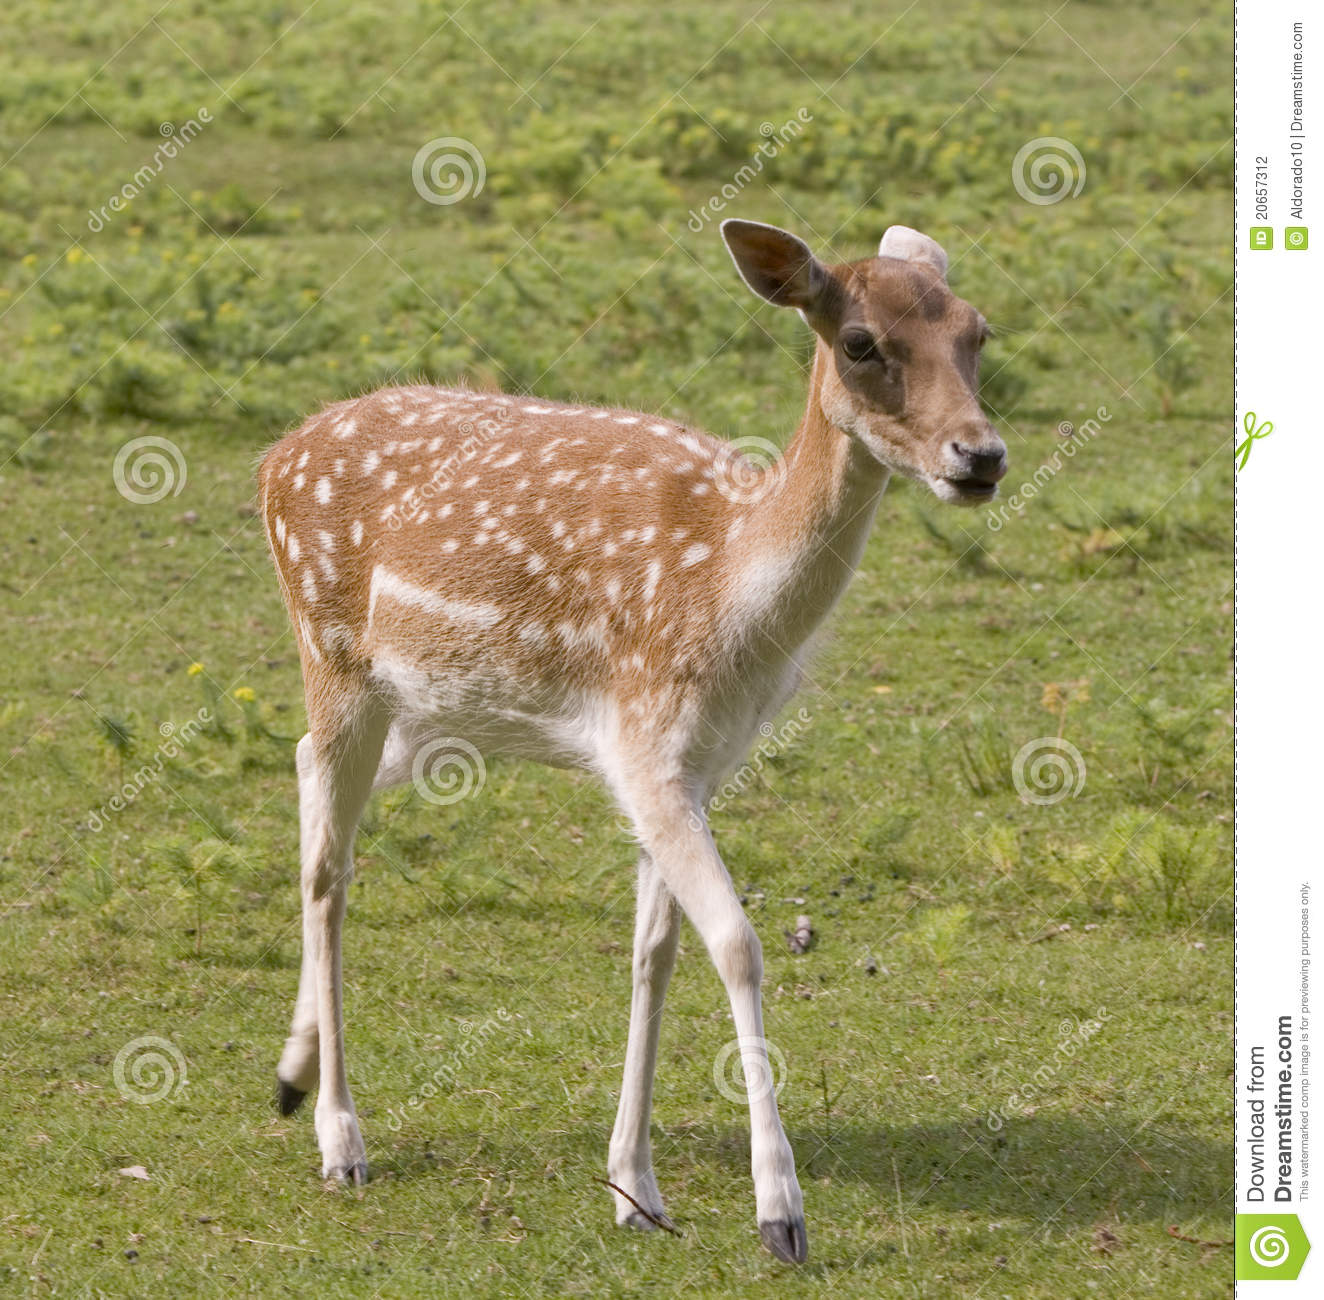 Female Deer In Countryside Stock Photography Image 20657312